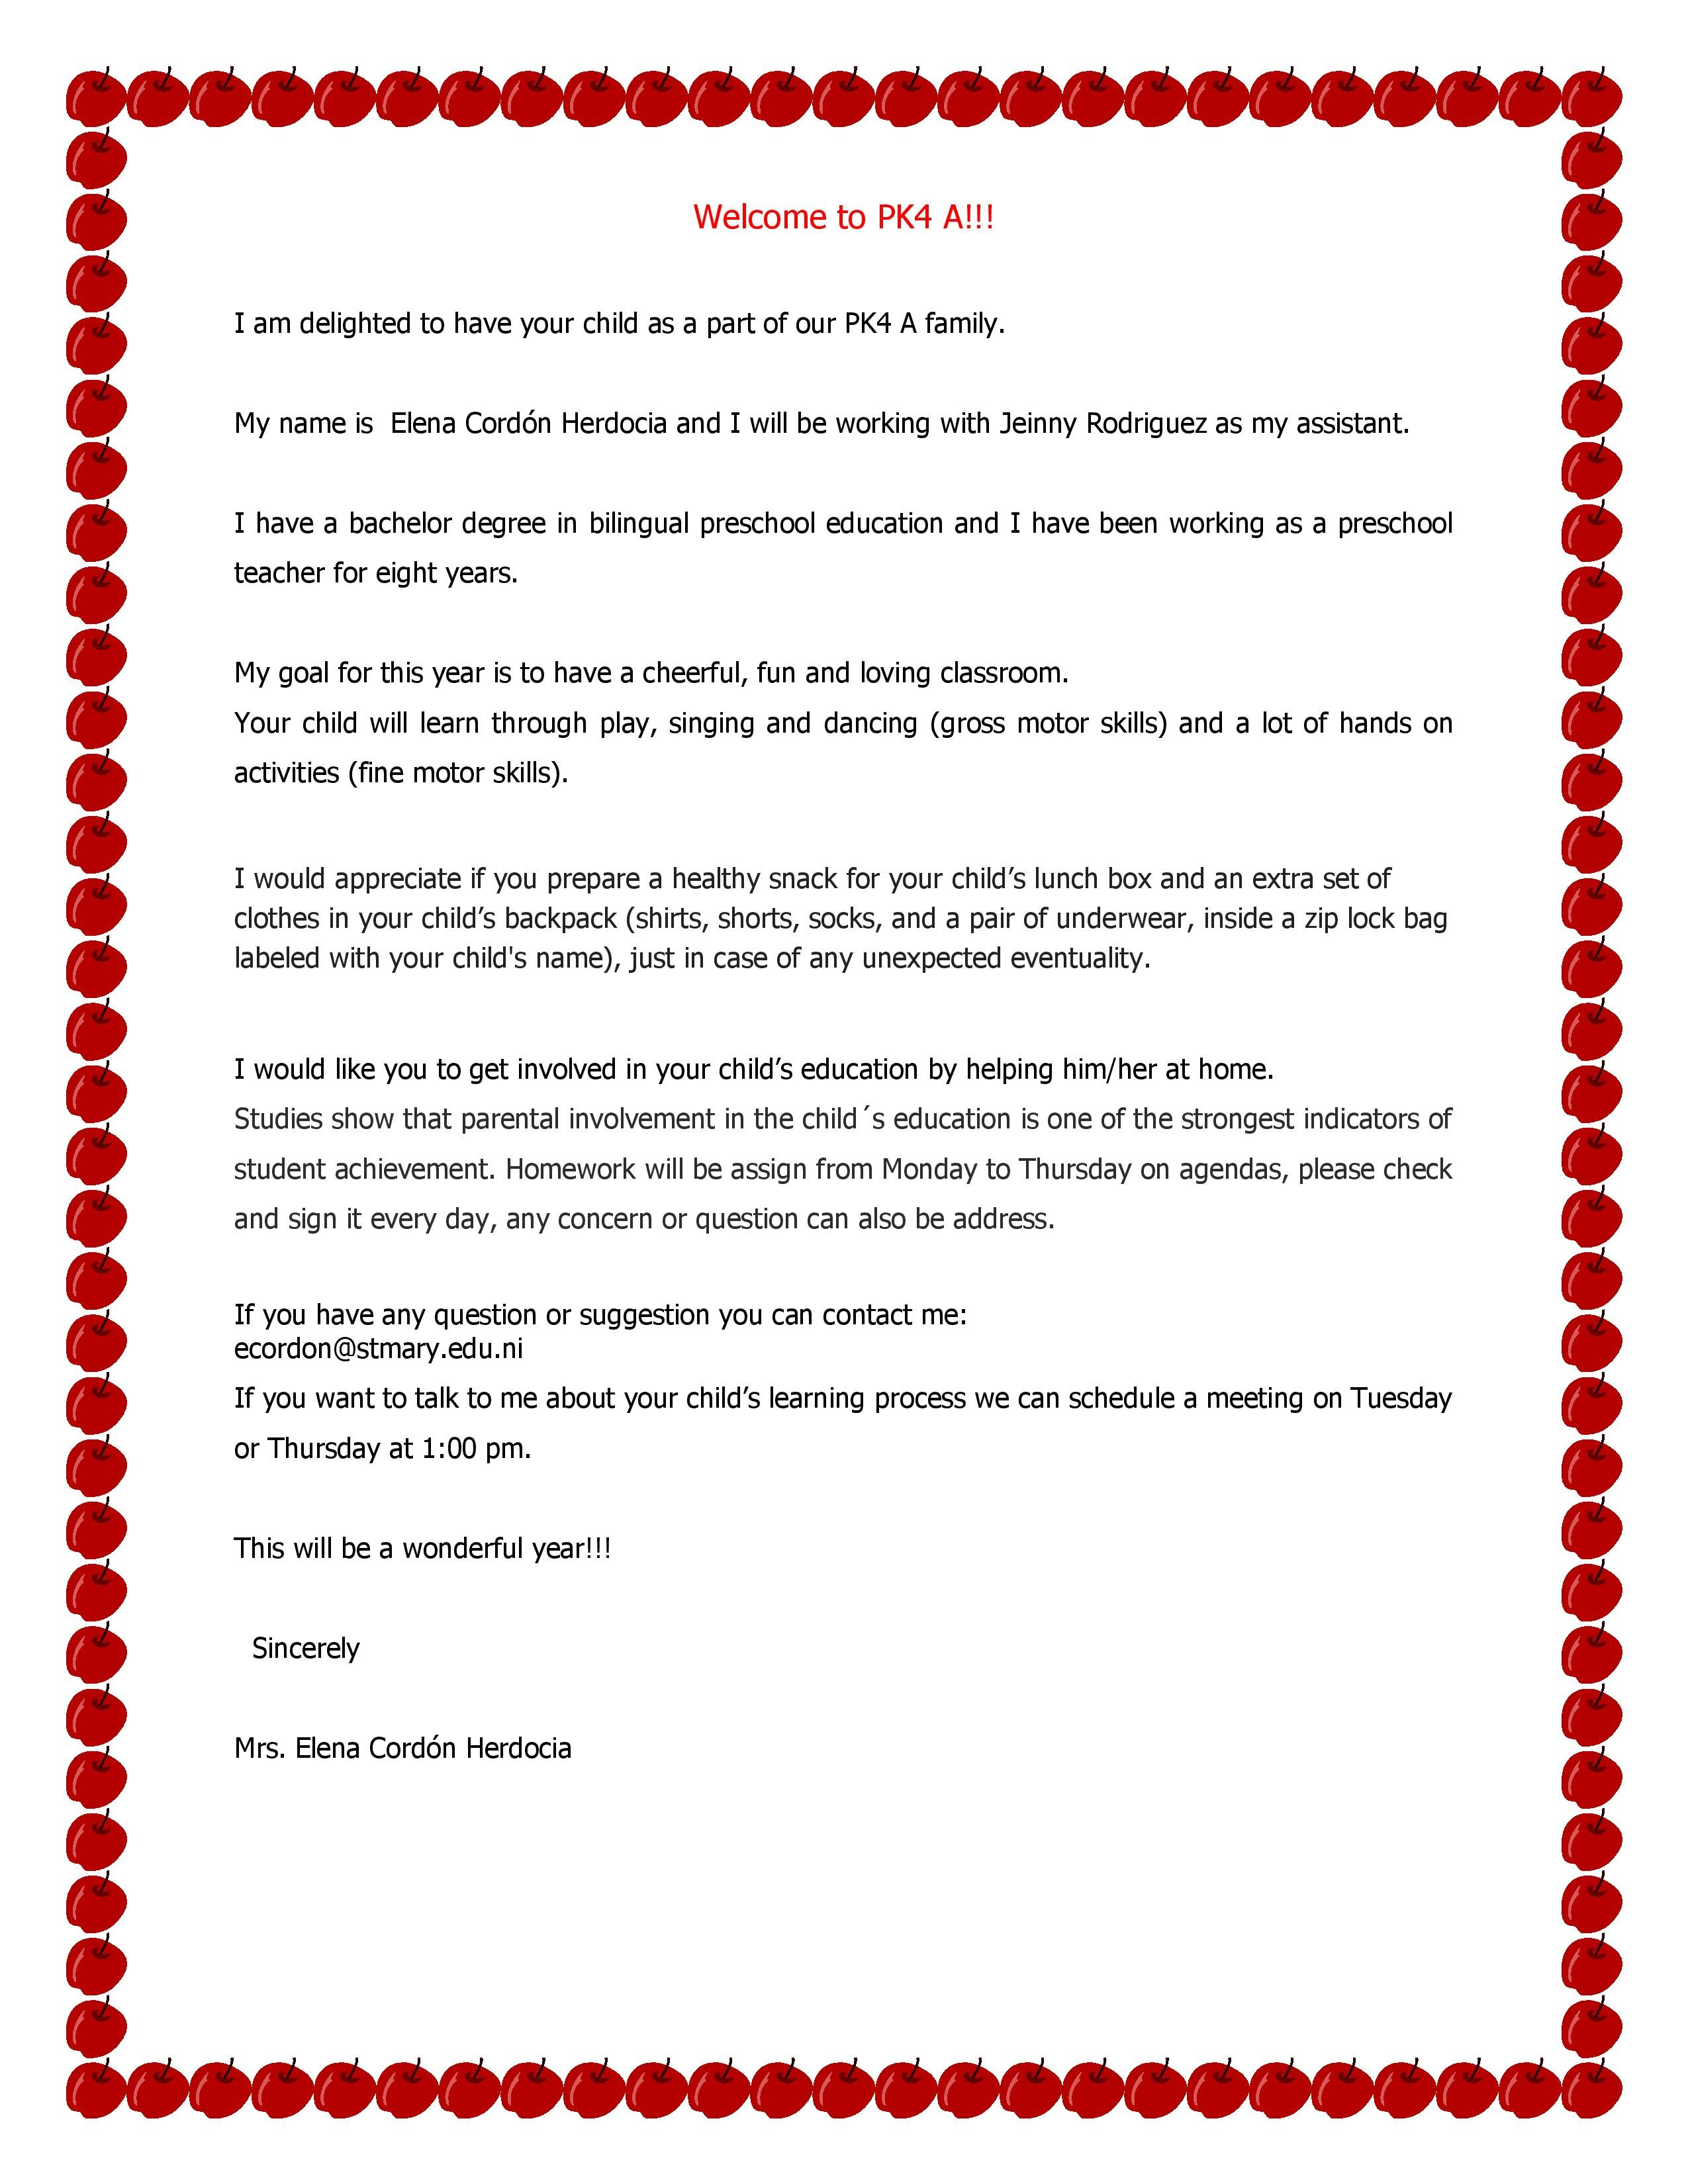 Welcome Letter   Pre Kinder 4 A, 2016